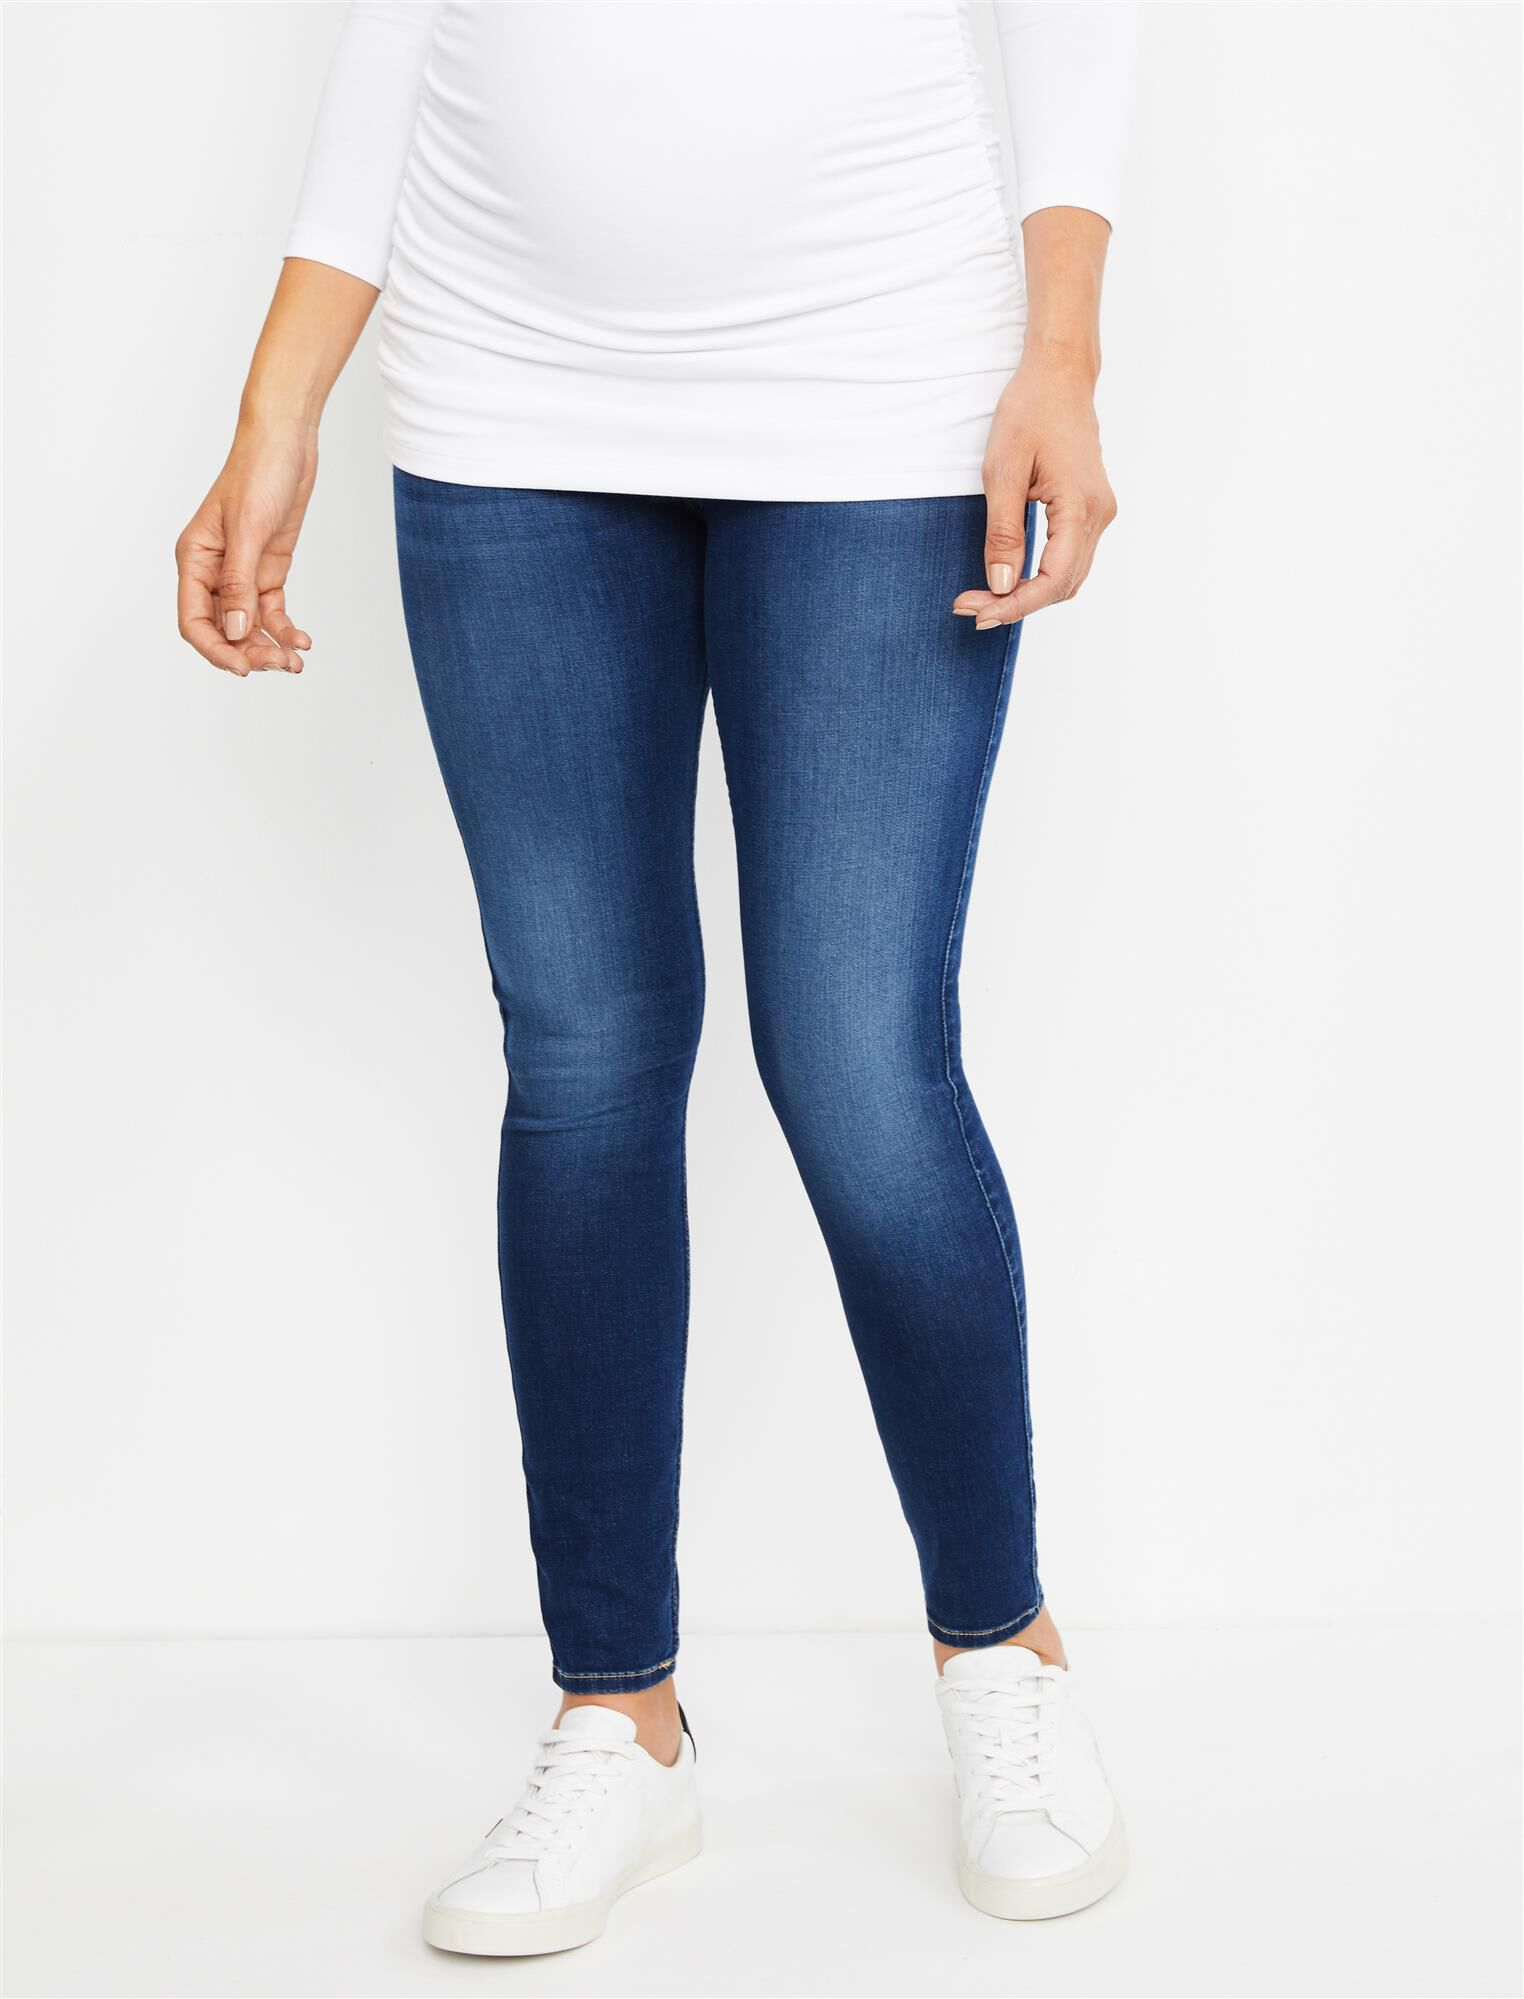 7 For All Mankind Secret Fit Belly B(air) Ankle Skinny Maternity Jeans